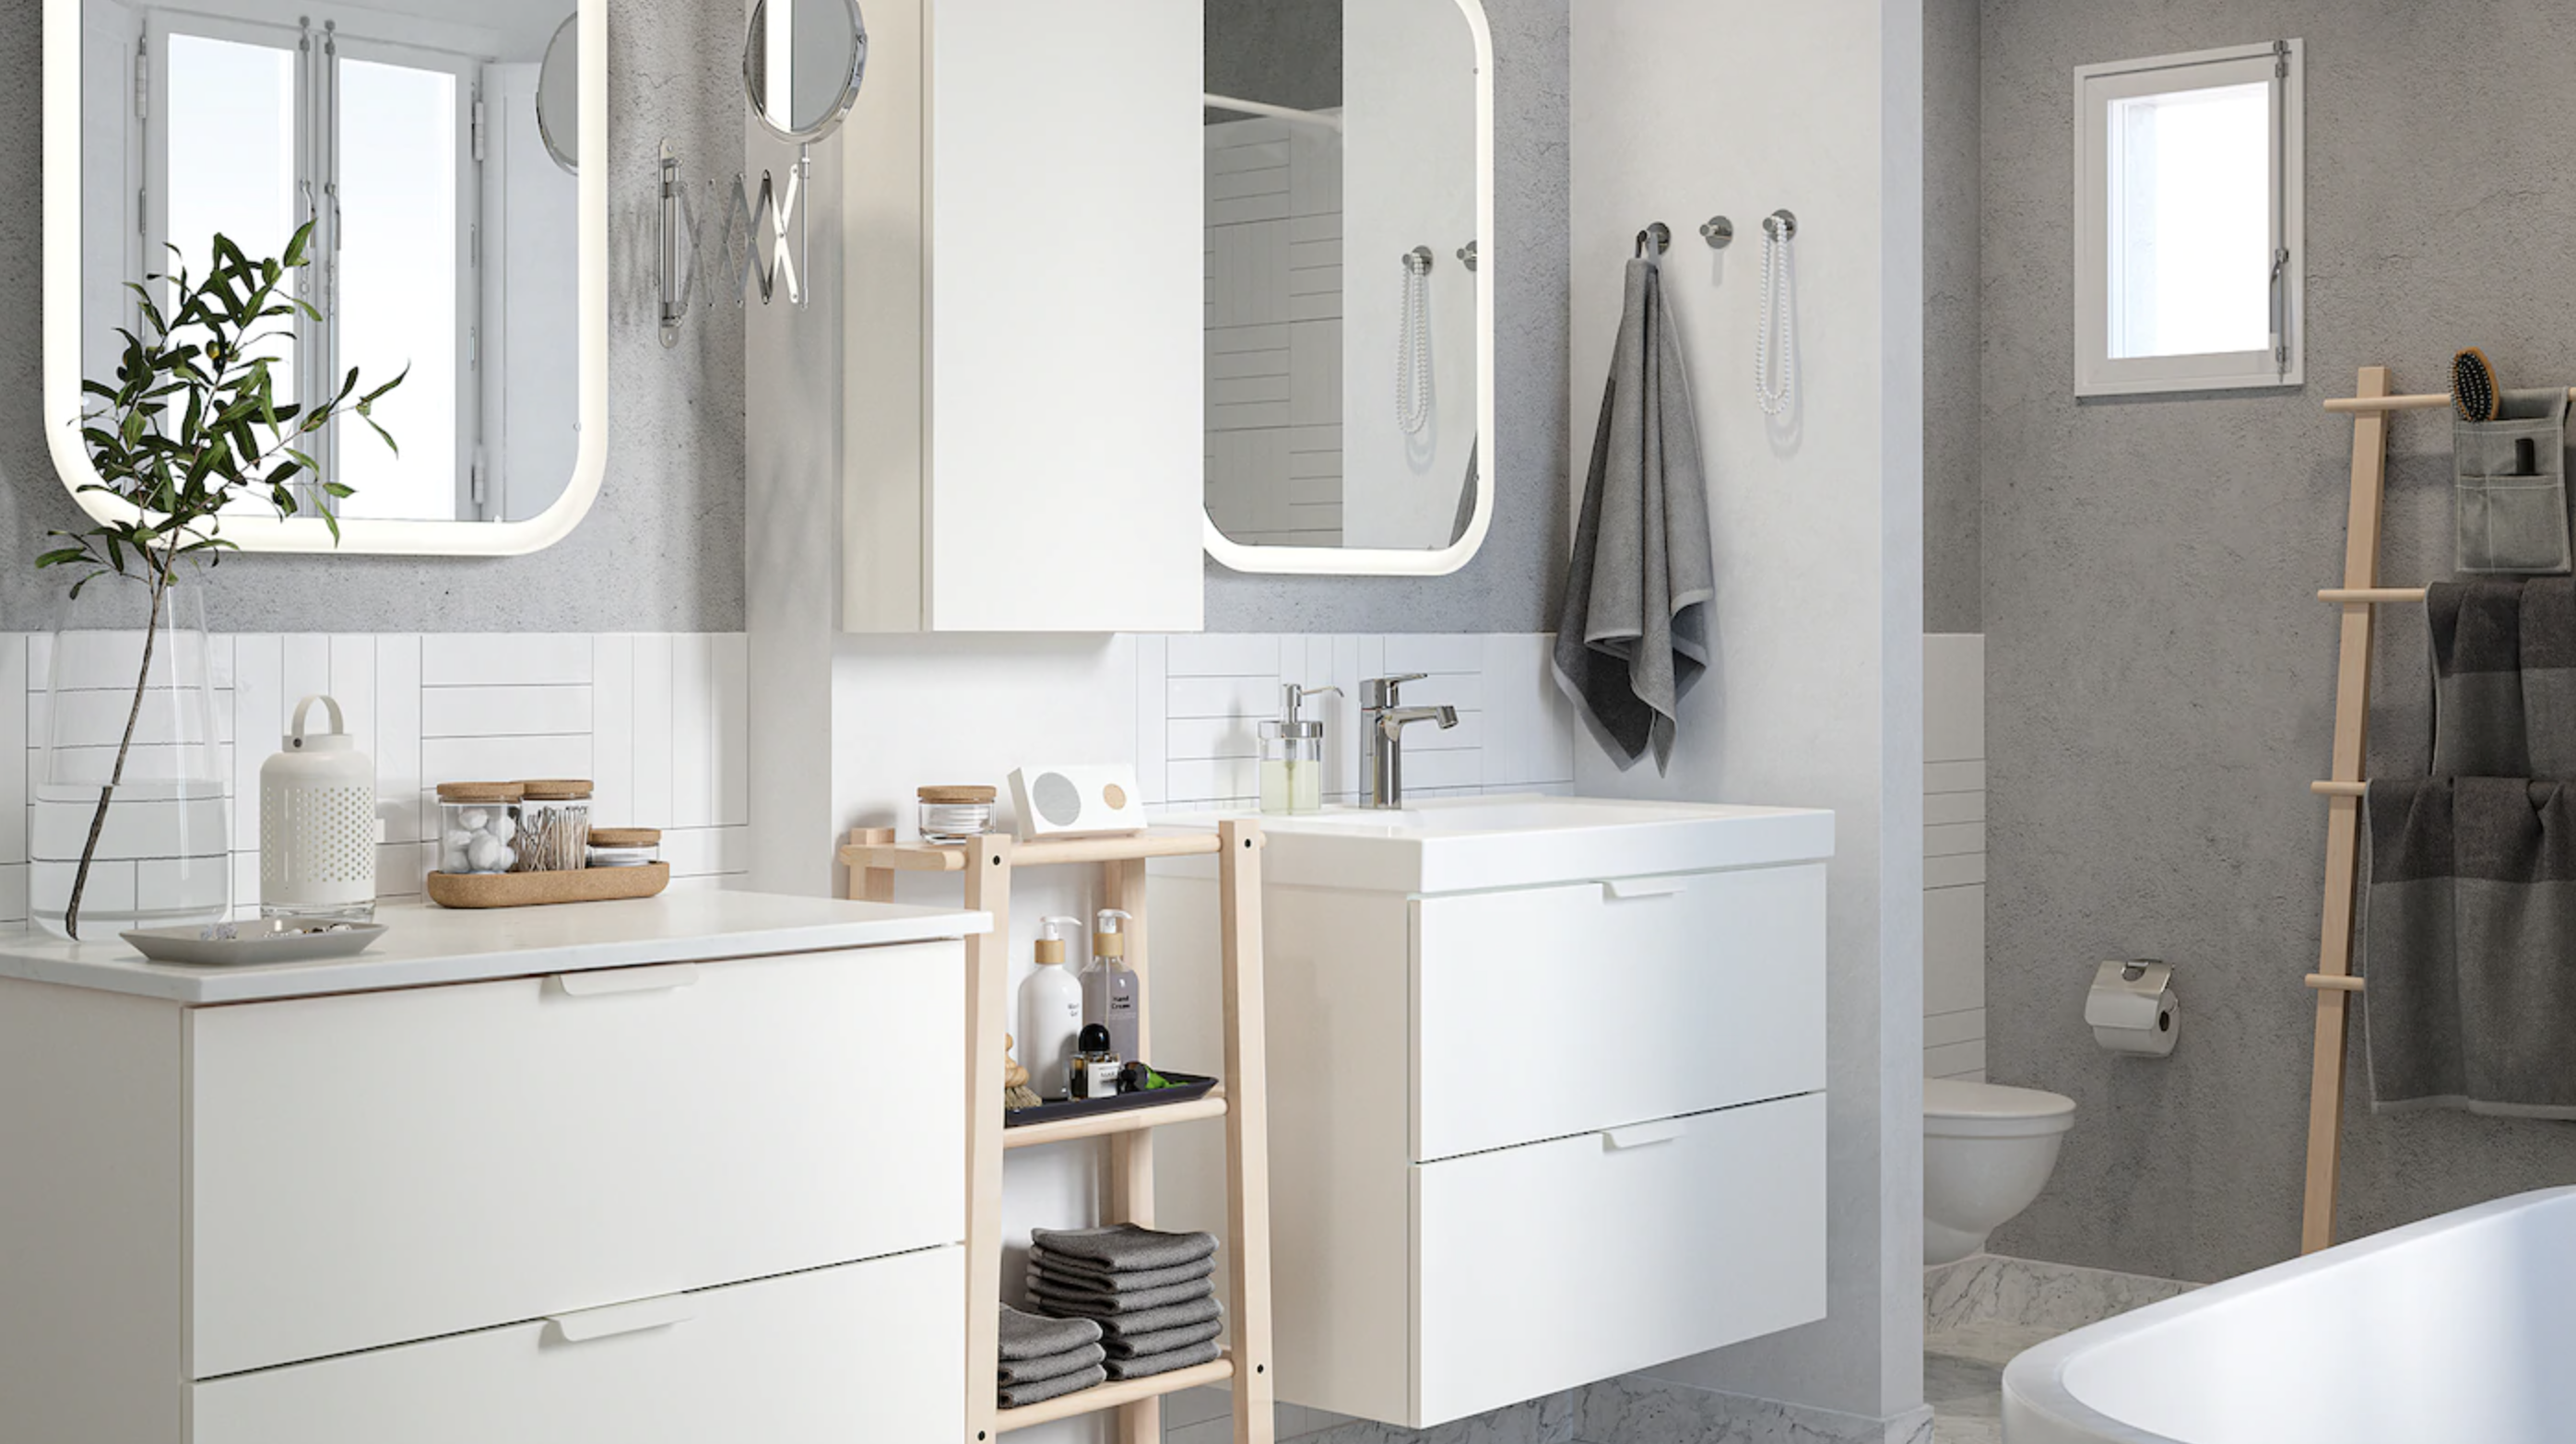 Bathrooms On A Budget 23 Affordable Ways To Transform Yours Real Homes